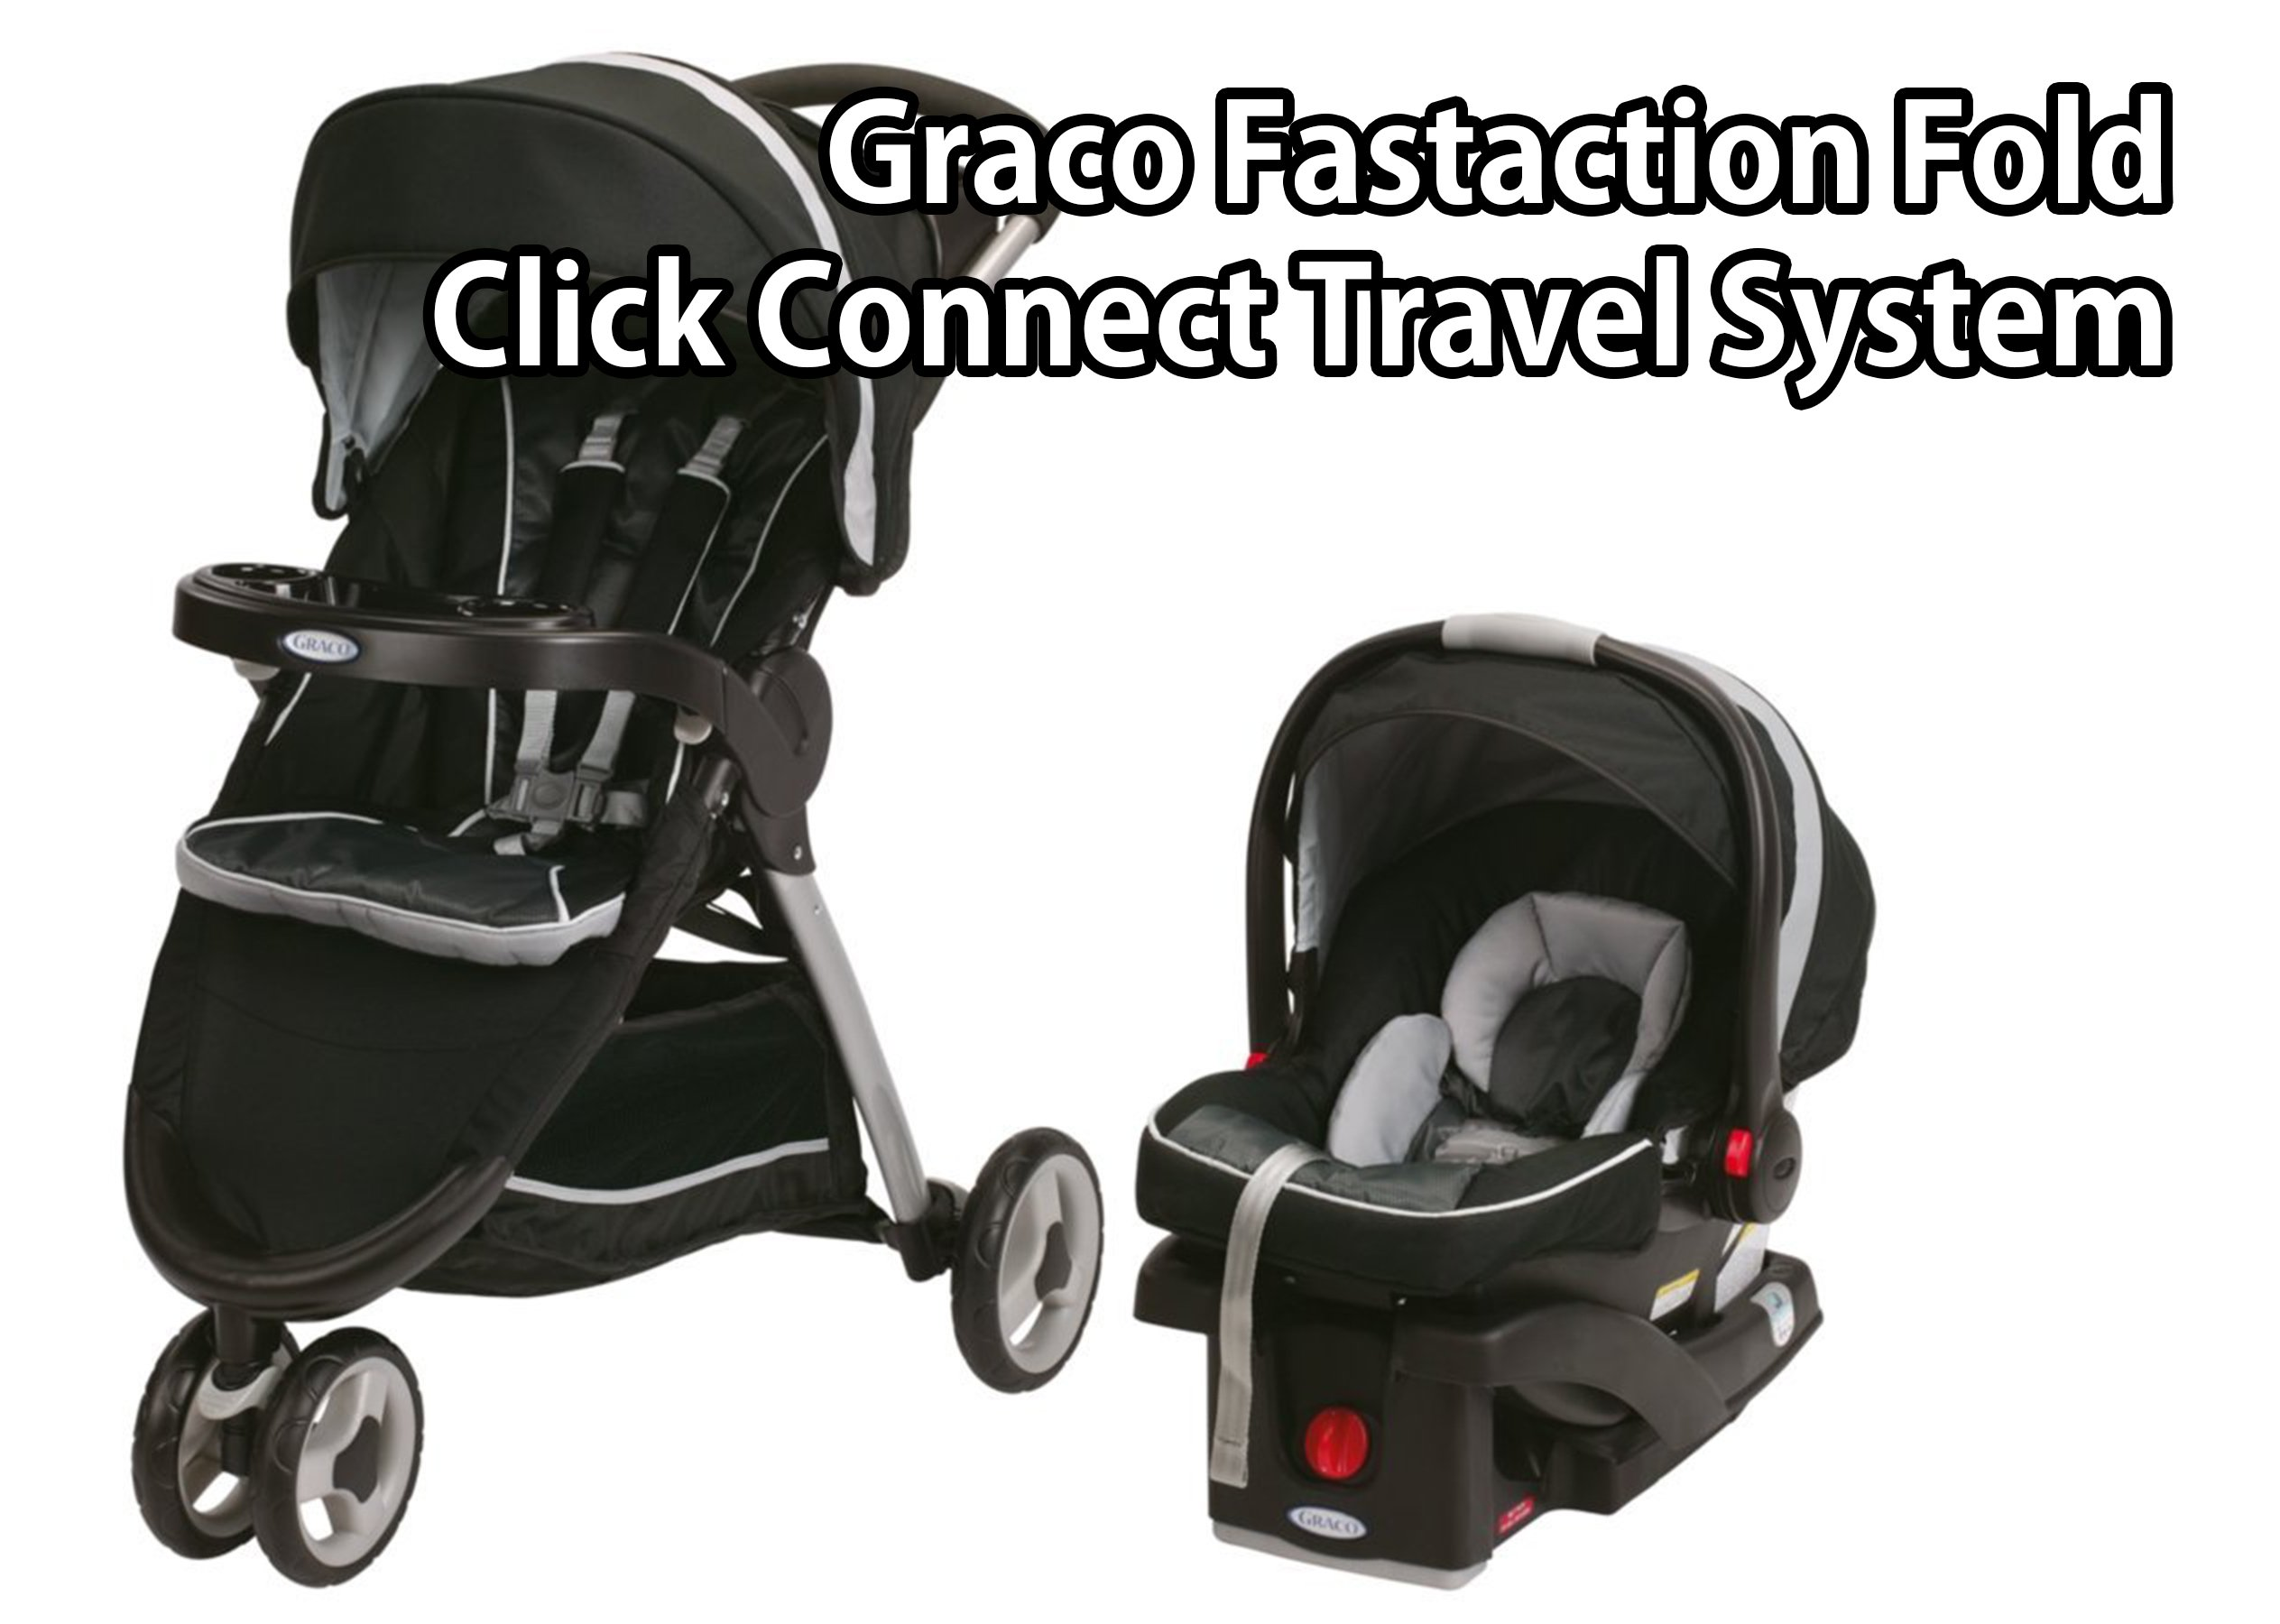 Graco Fastaction Fold Connect Travel System Safety on the Move The Baby Choice